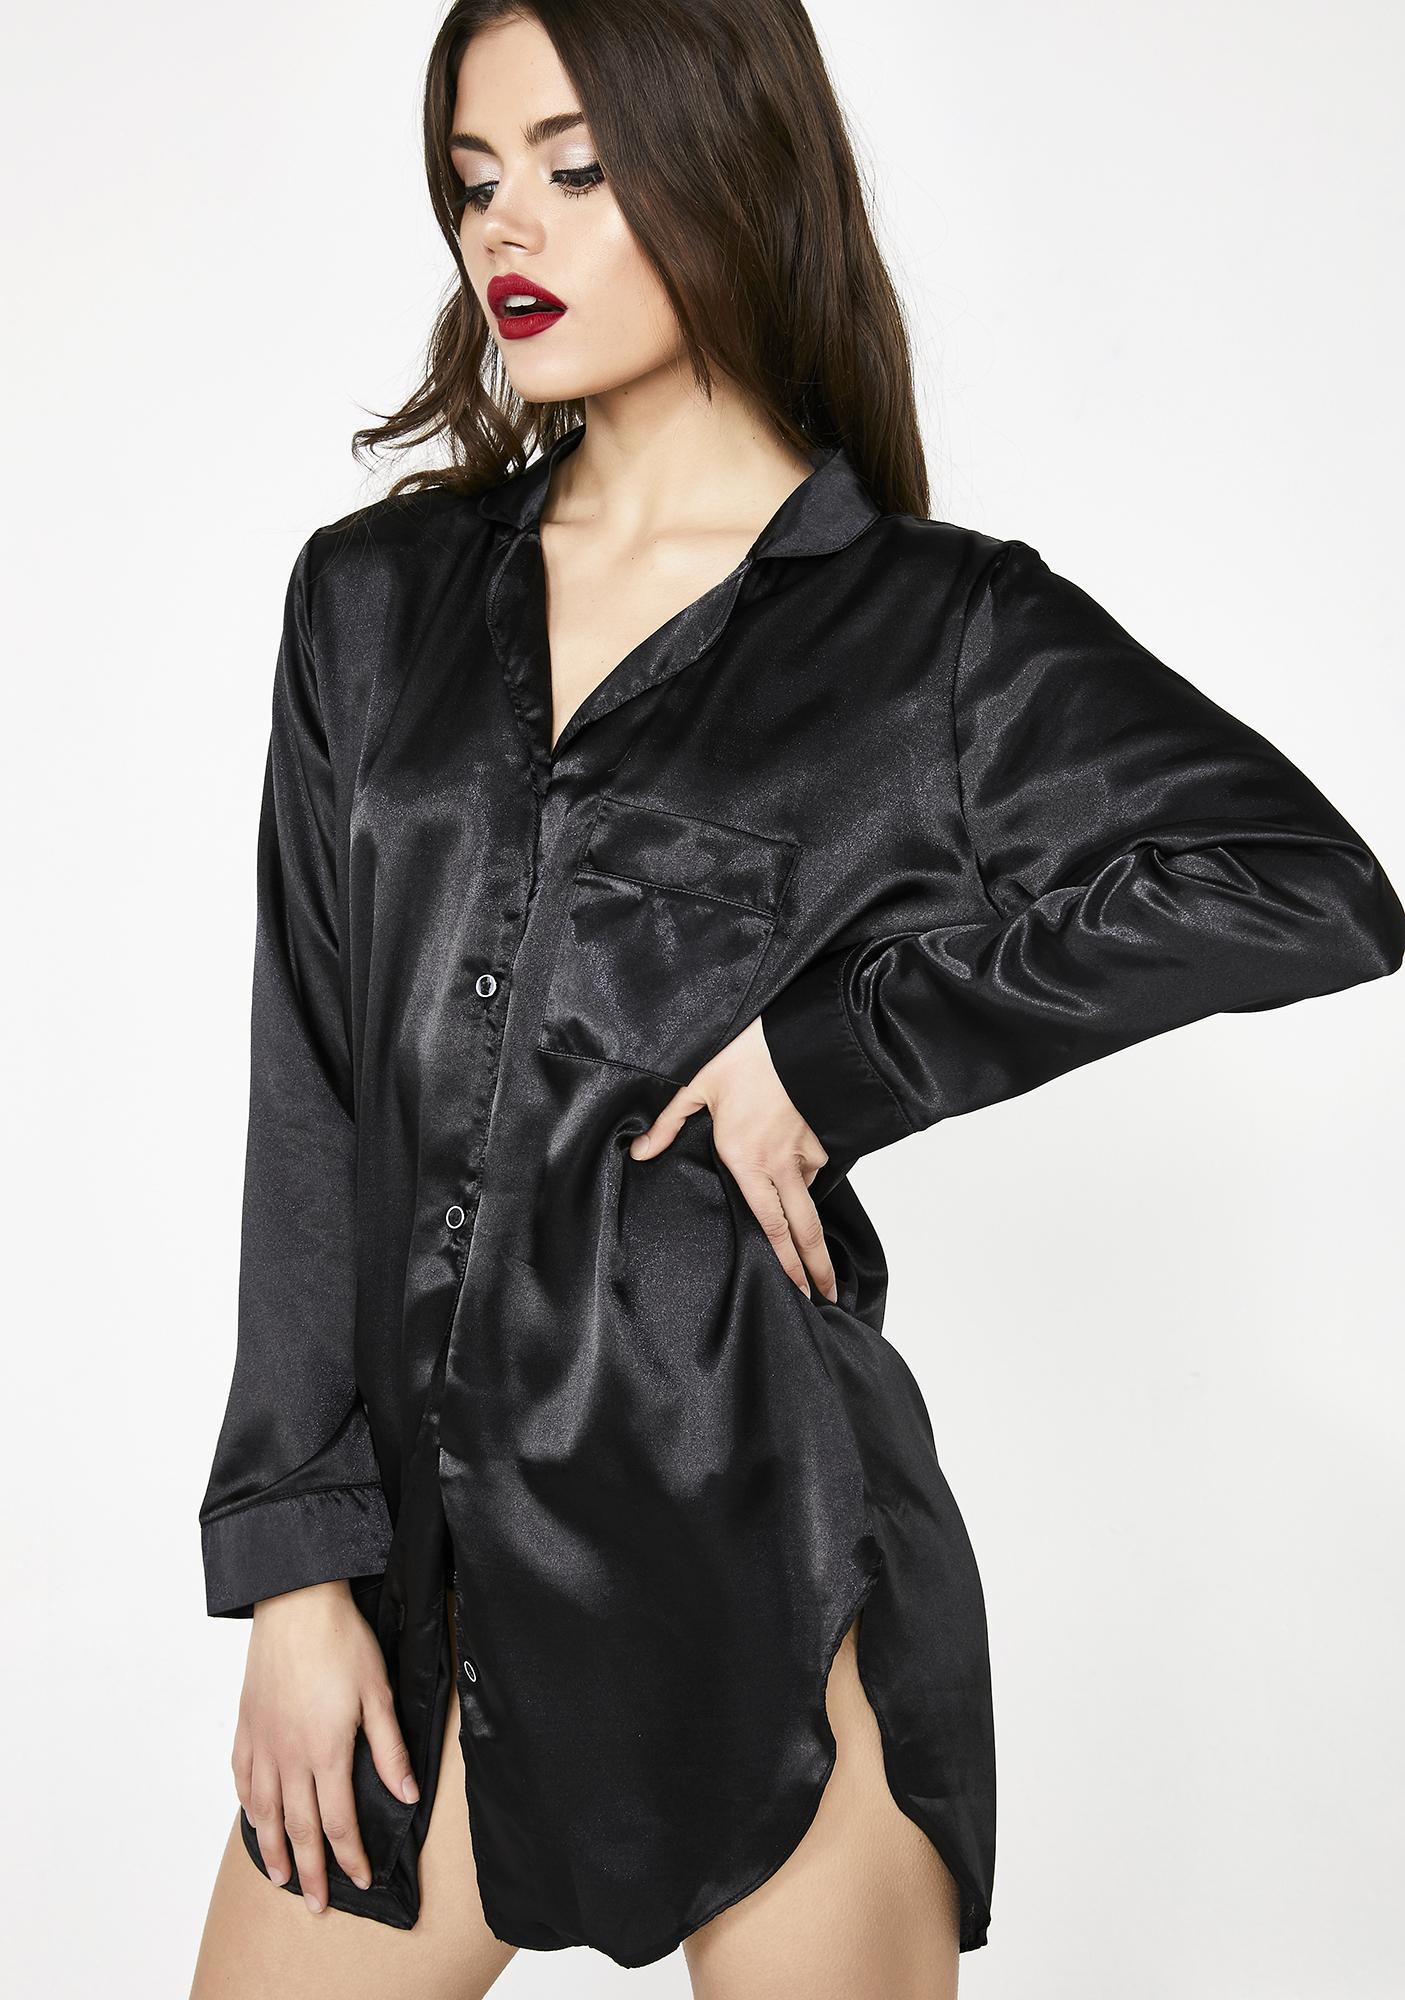 Indulge Me Satin Sleep Shirt by Be Wicked